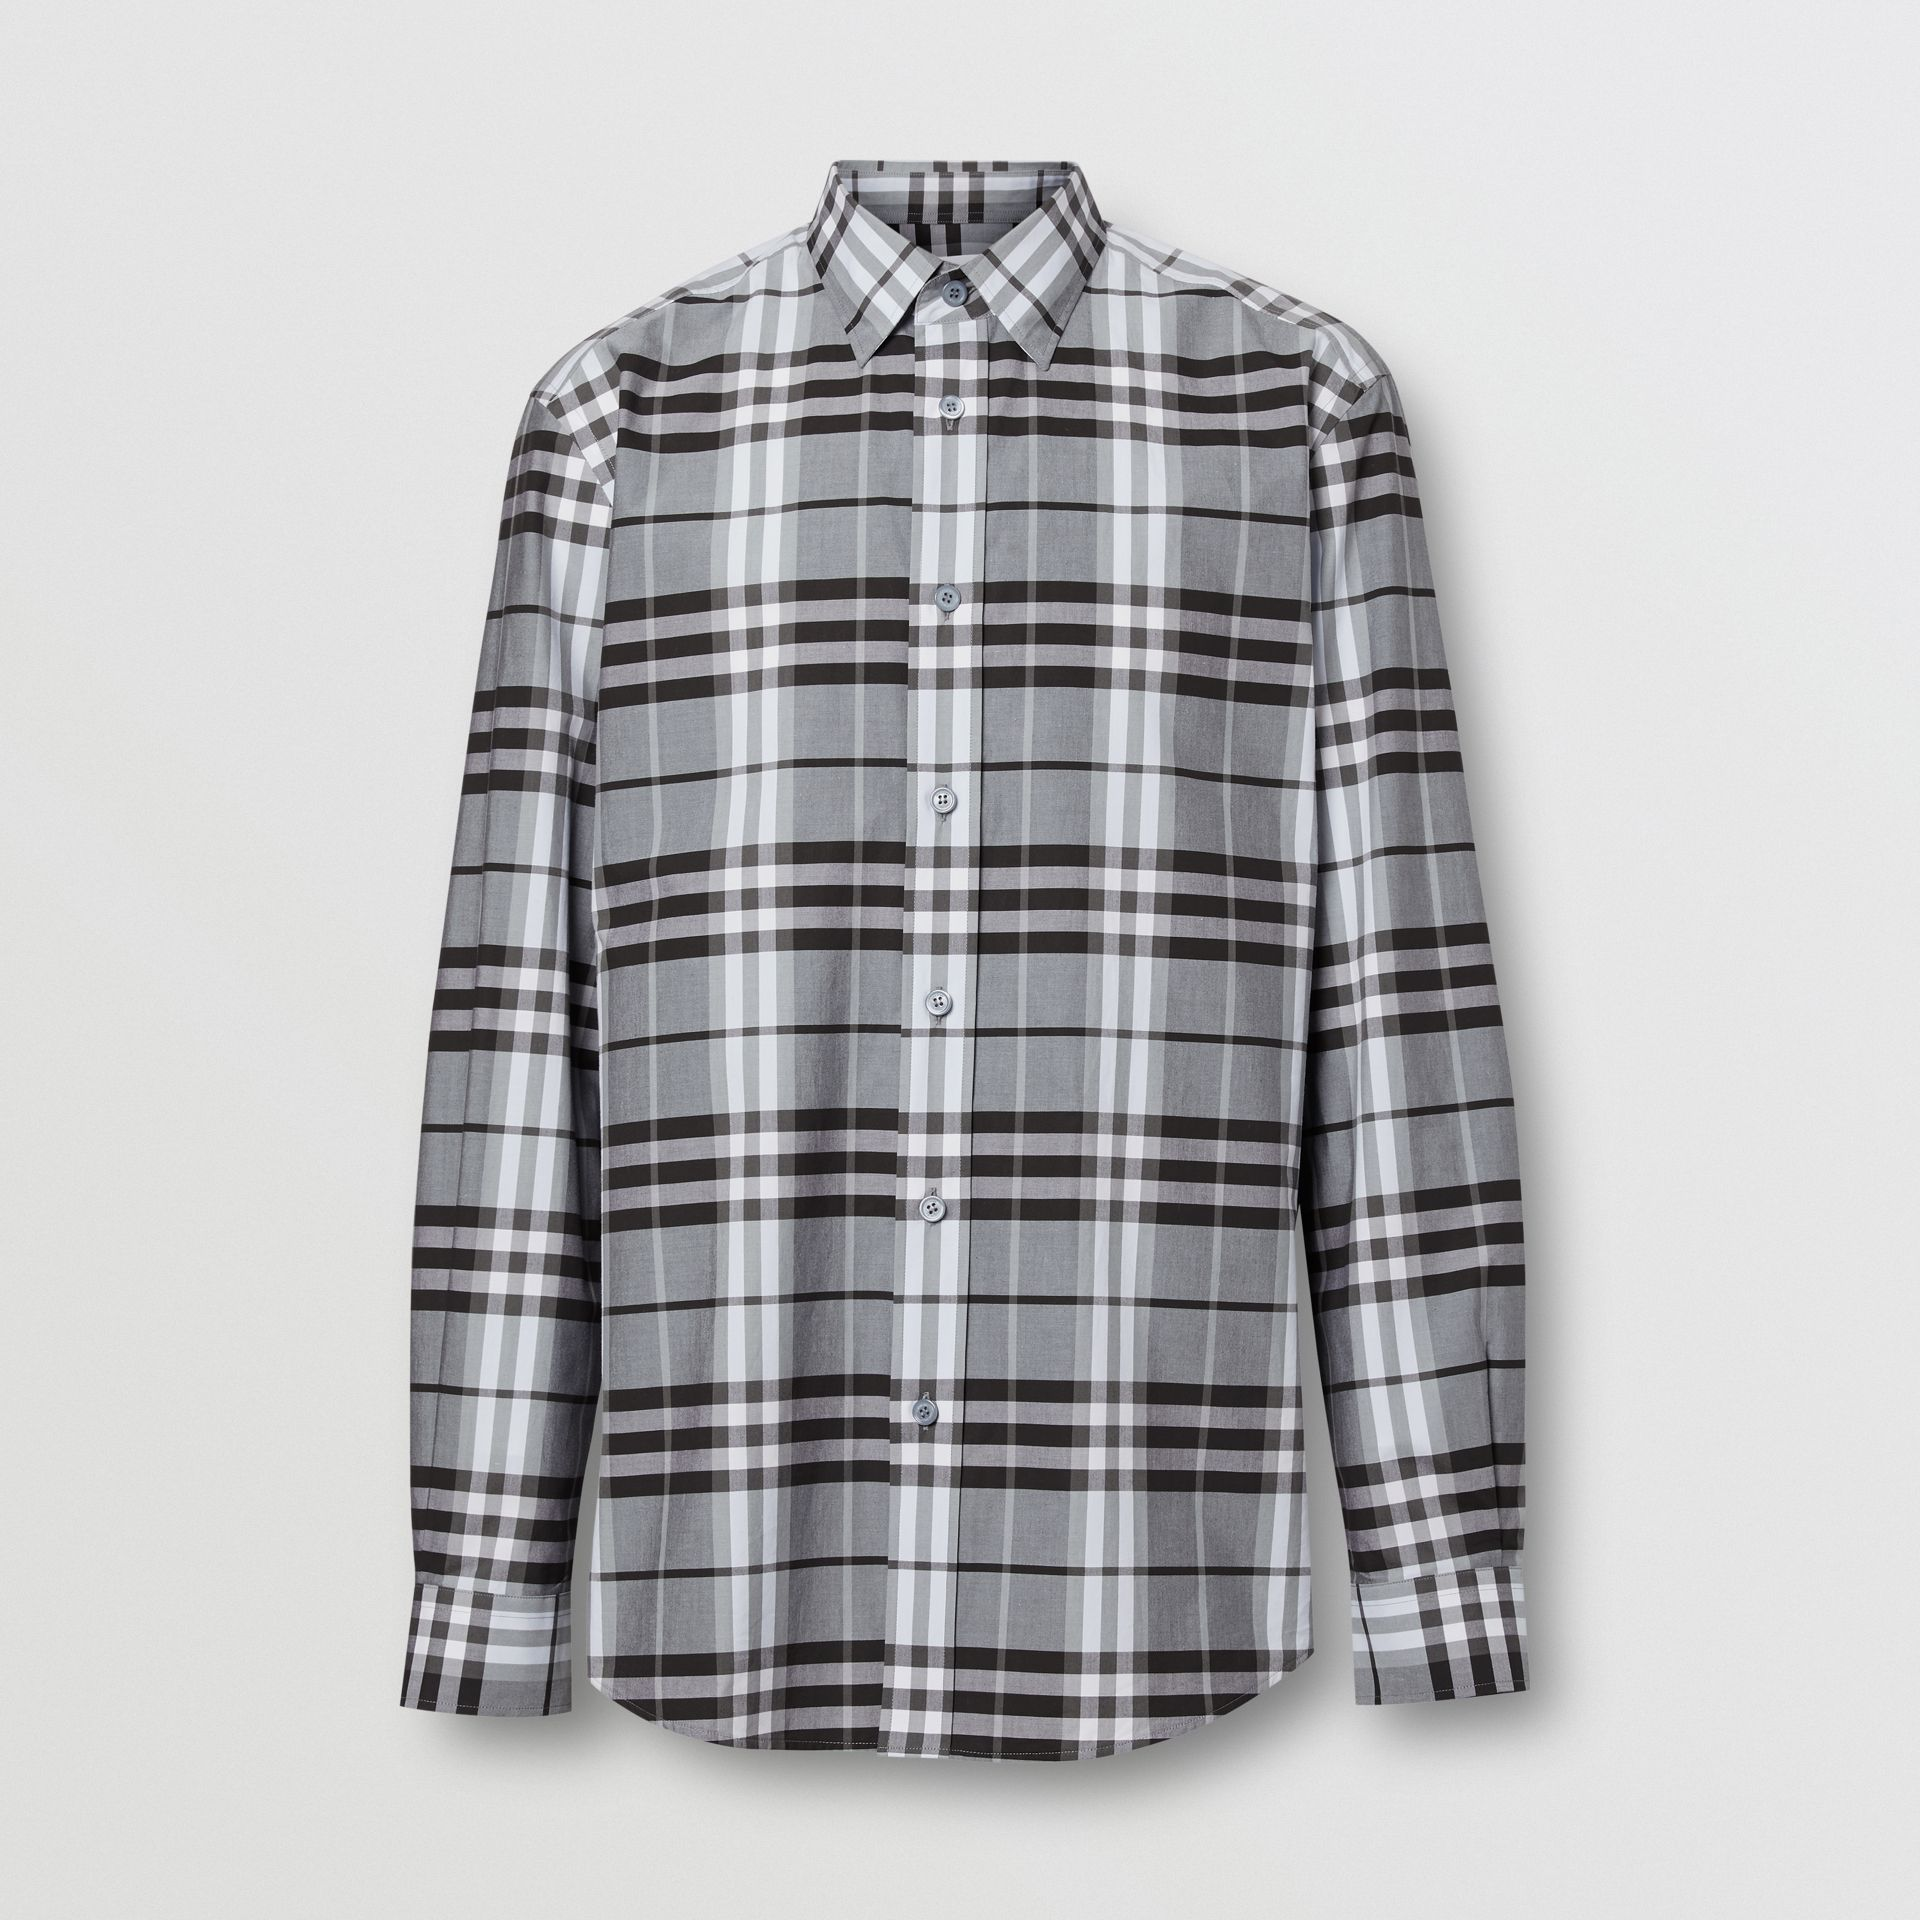 Vintage Check Cotton Poplin Shirt in Sky Blue - Men | Burberry - gallery image 3